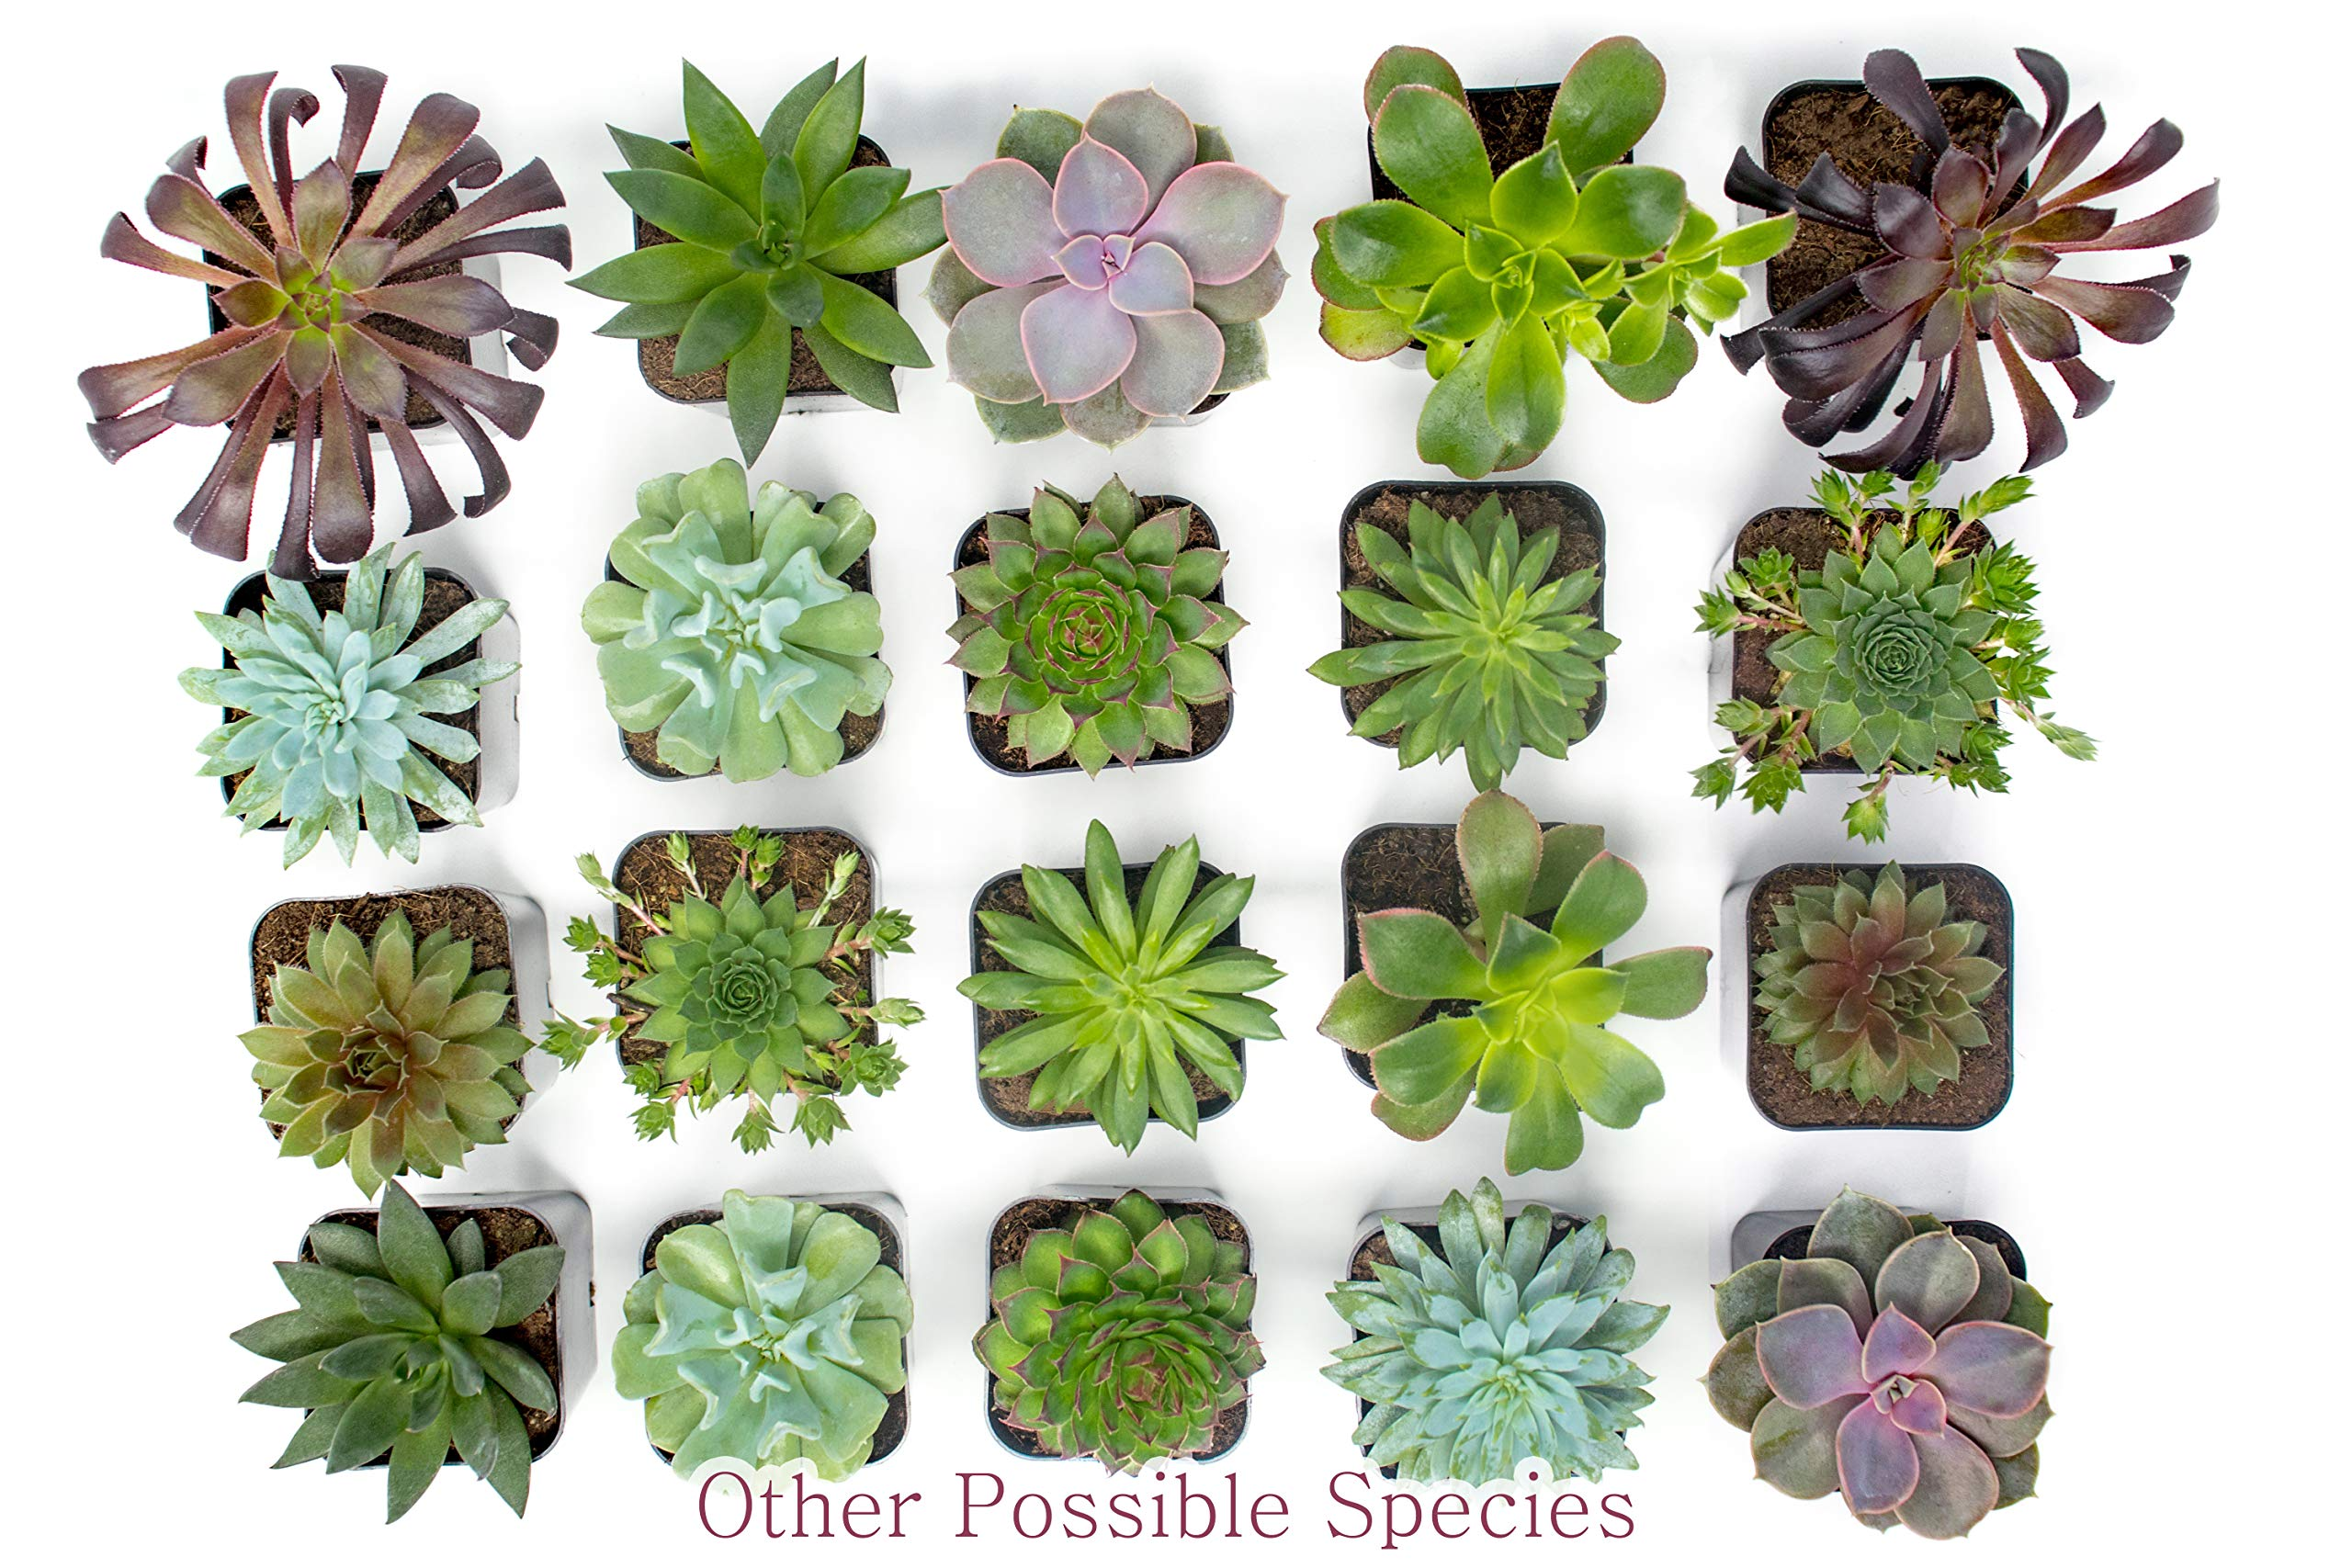 Succulent Plants (5 Pack), Fully Rooted in Planter Pots with Soil -  Real Live Potted Succulents / Unique Indoor Cactus Decor by Plants for Pets 9 HAND SELECTED: Every pack of succulents we send is hand-picked. You will receive a unique collection of species that are FULLY ROOTED IN 2 INCH POTS, which will be similar to the product photos (see photo 2 for scale). Note that we rotate our nursery stock often, so the exact species we send changes every week. THE EASIEST HOUSE PLANTS: More appealing than artificial plastic or fake faux plants, and care is a cinch. If you think you can't keep houseplants alive, you're wrong; our succulents don't require fertilizer and can be planted in a decorative pot of your choice within seconds. DIY HOME DECOR: The possibilities are only limited by your imagination; display them in a plant holder, a wall mount, a geometric glass vase, or even in a live wreath. Because of their amazingly low care requirements, they can even make the perfect desk centerpiece for your office.